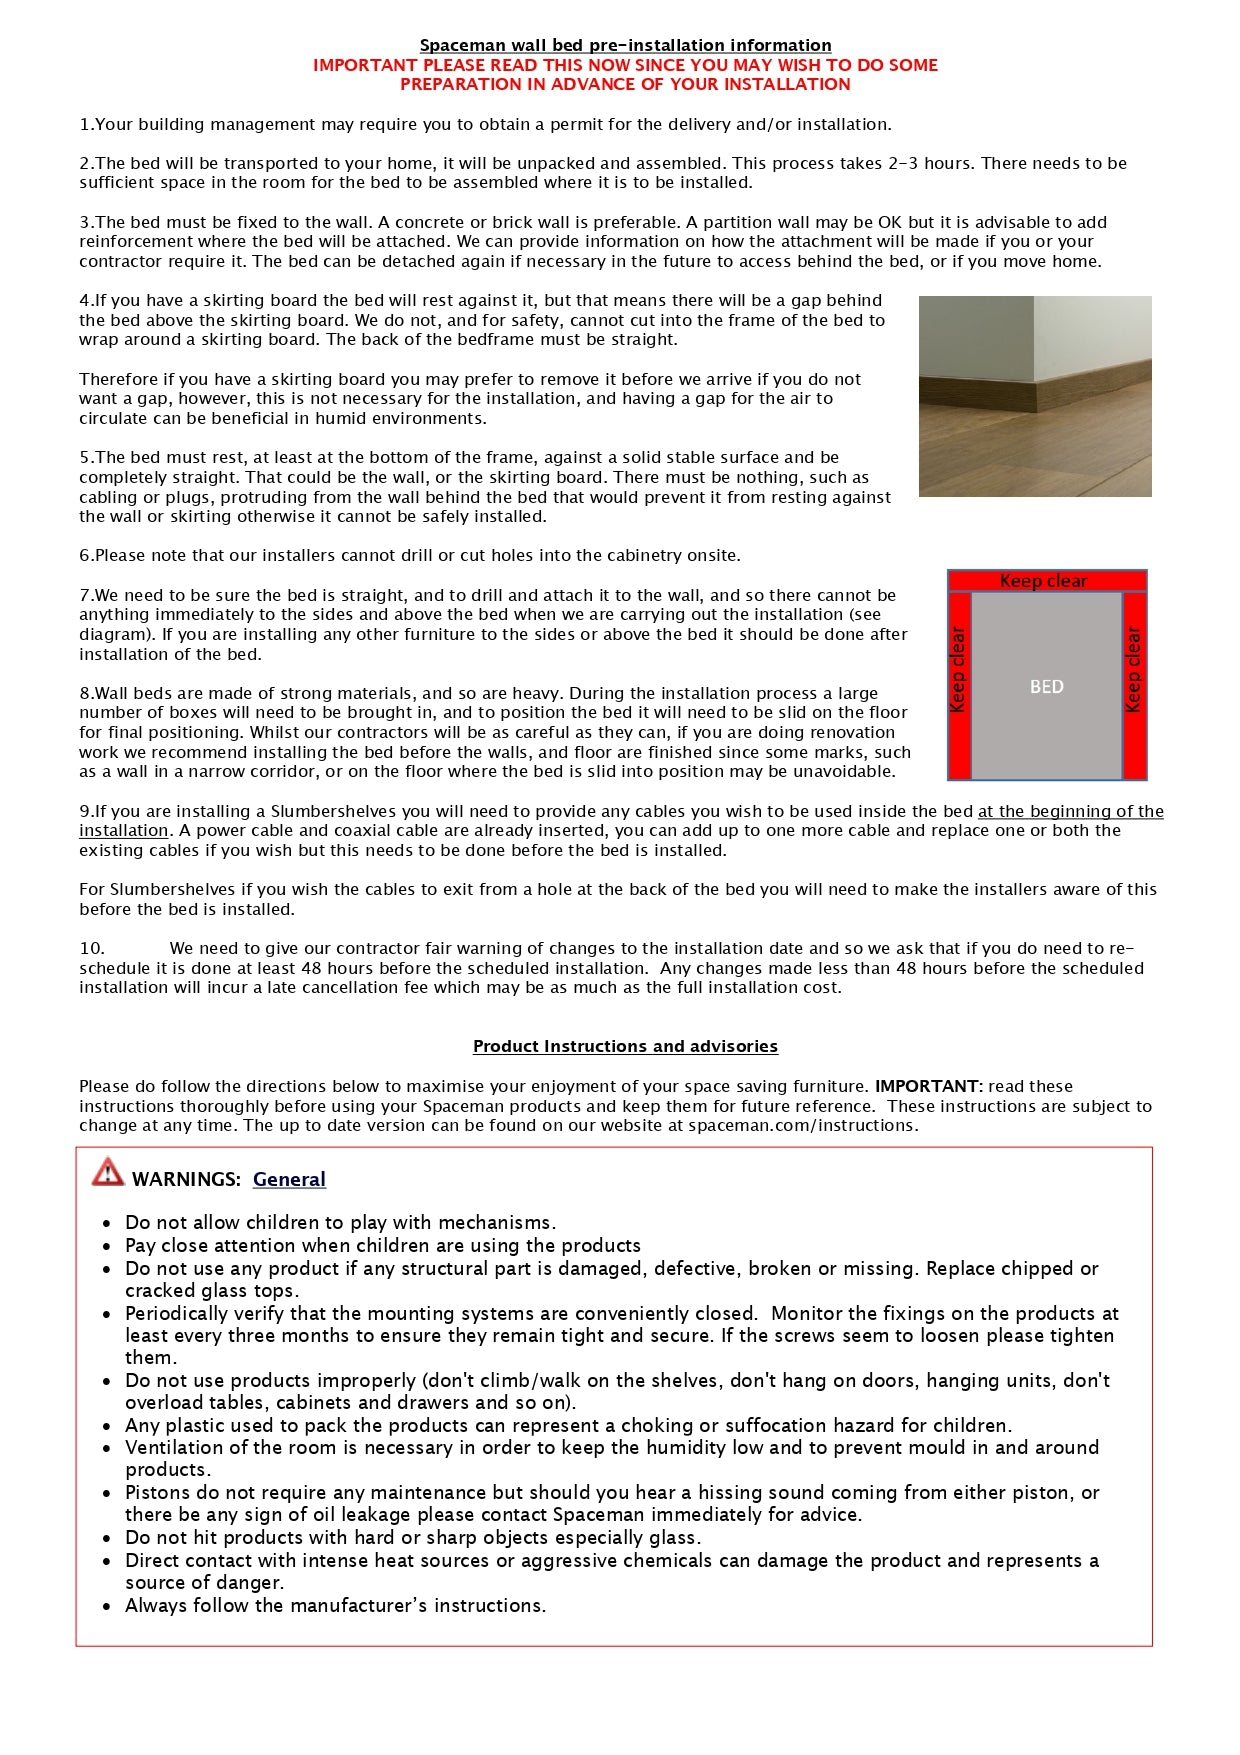 Spaceman Singapore English Instructions for wall beds and multi-functional dining tables